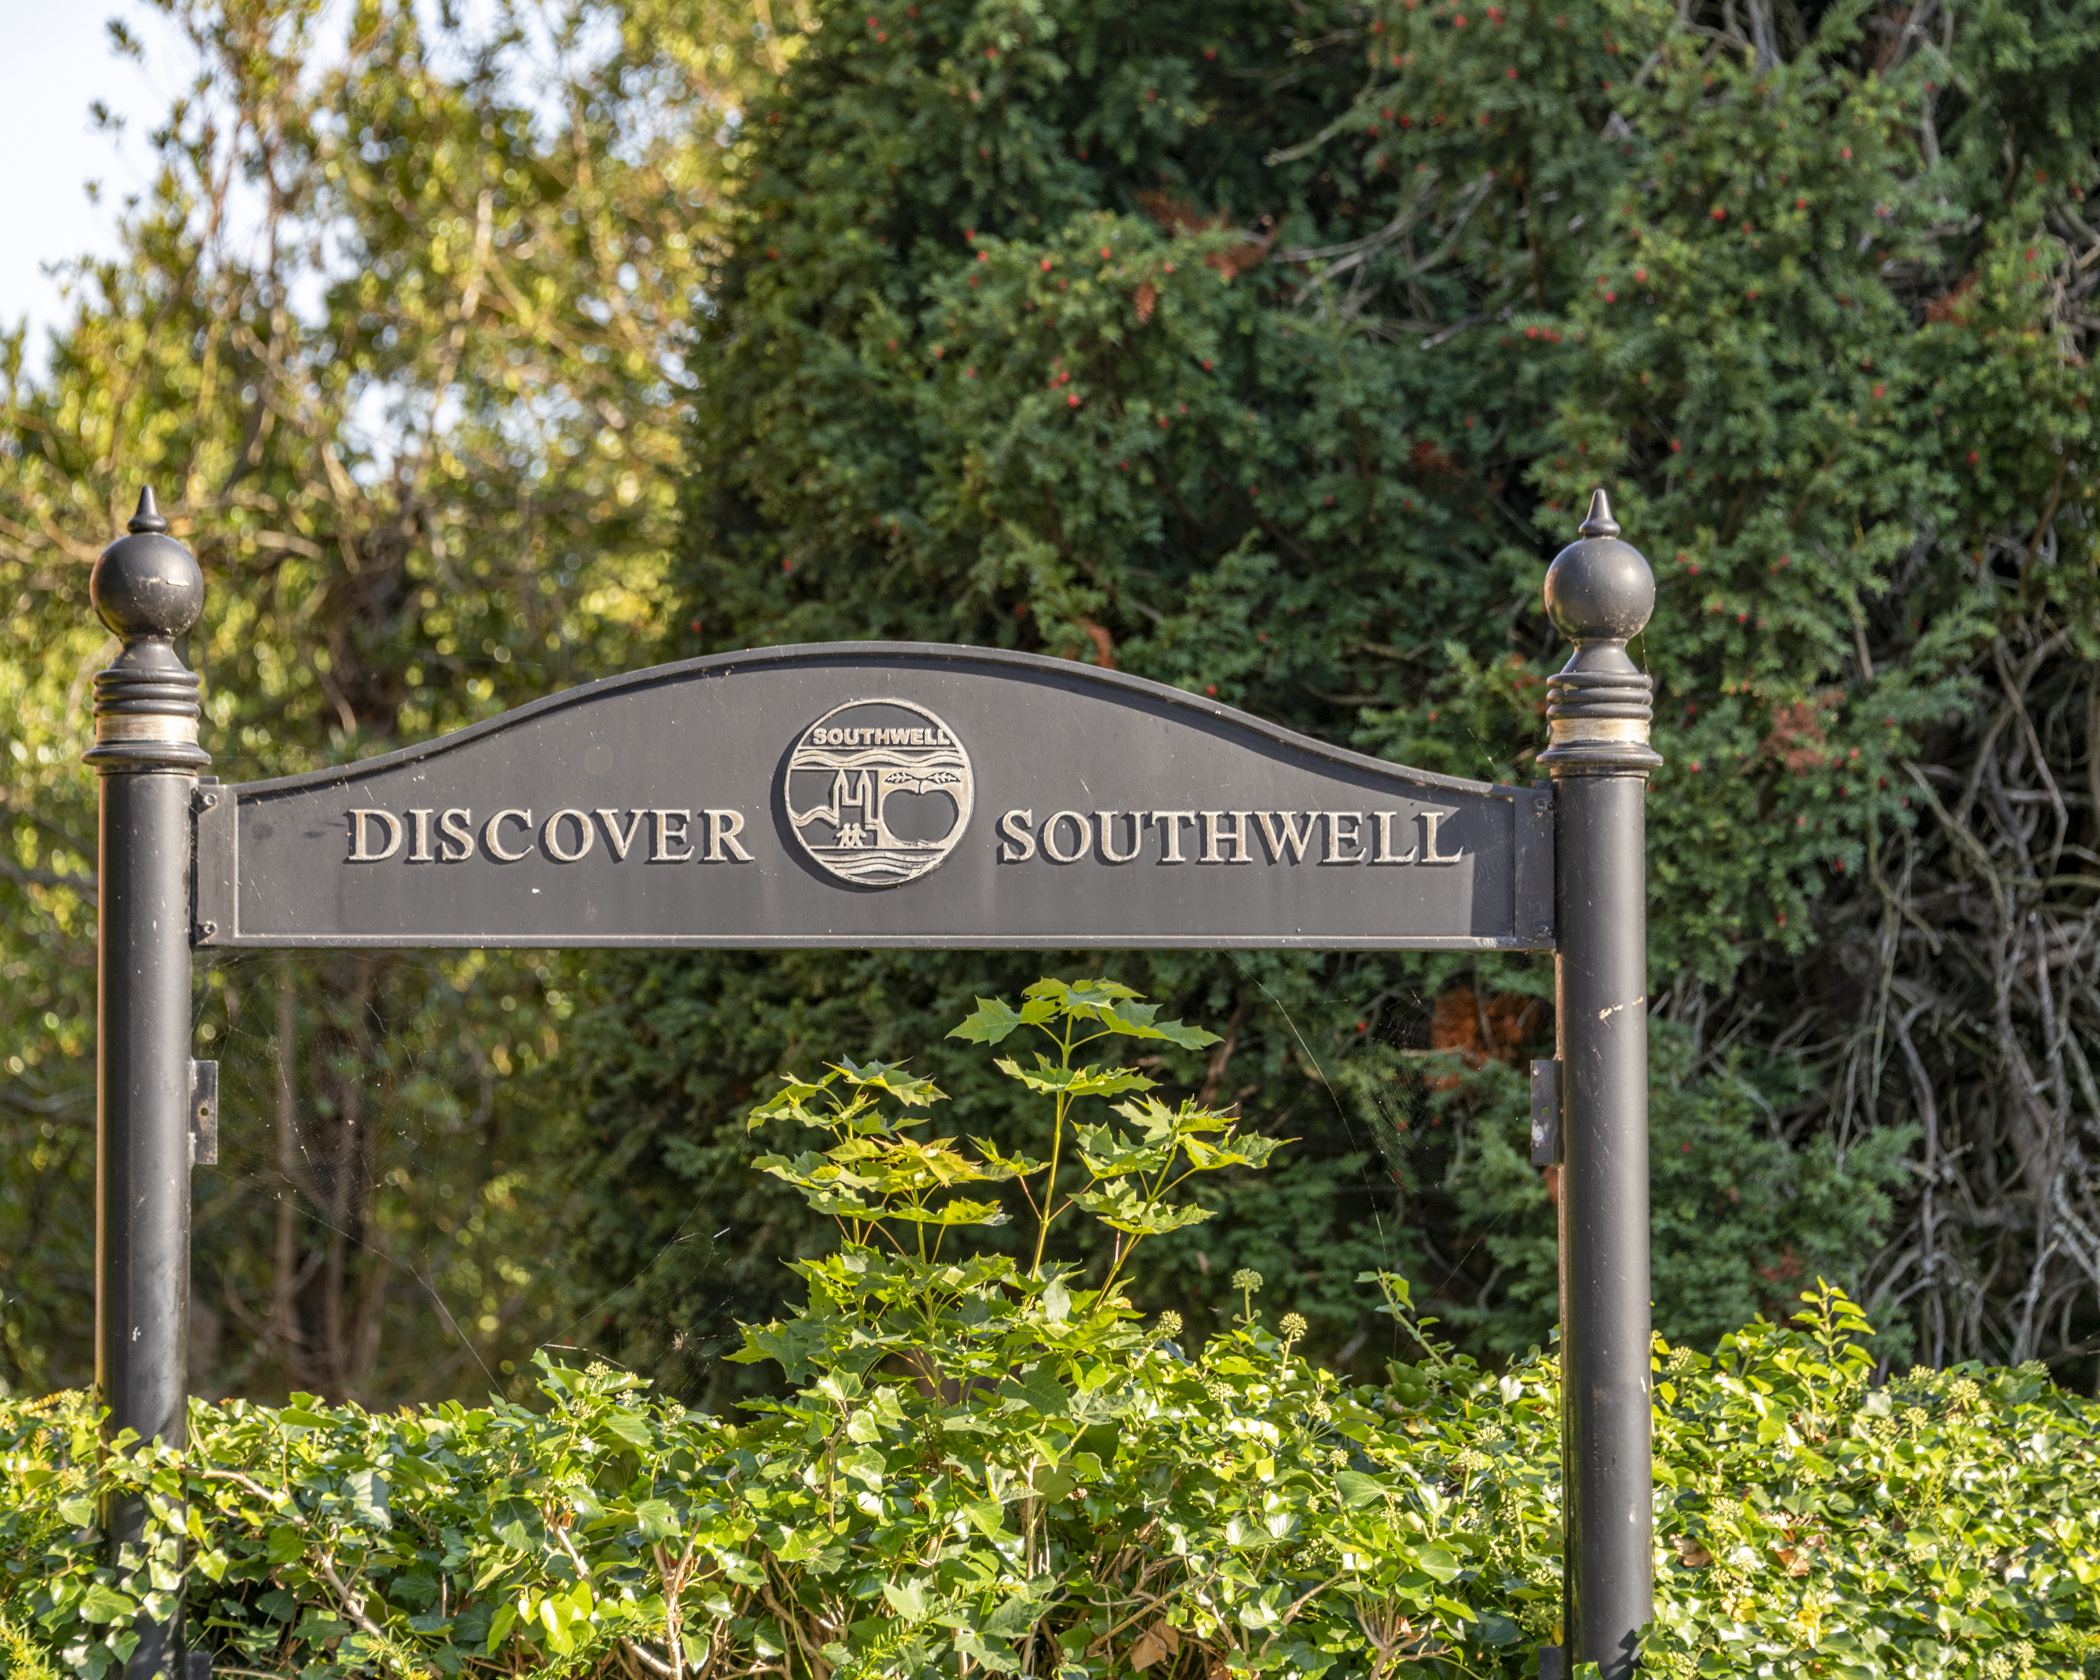 Discover Southwell sign outside the town